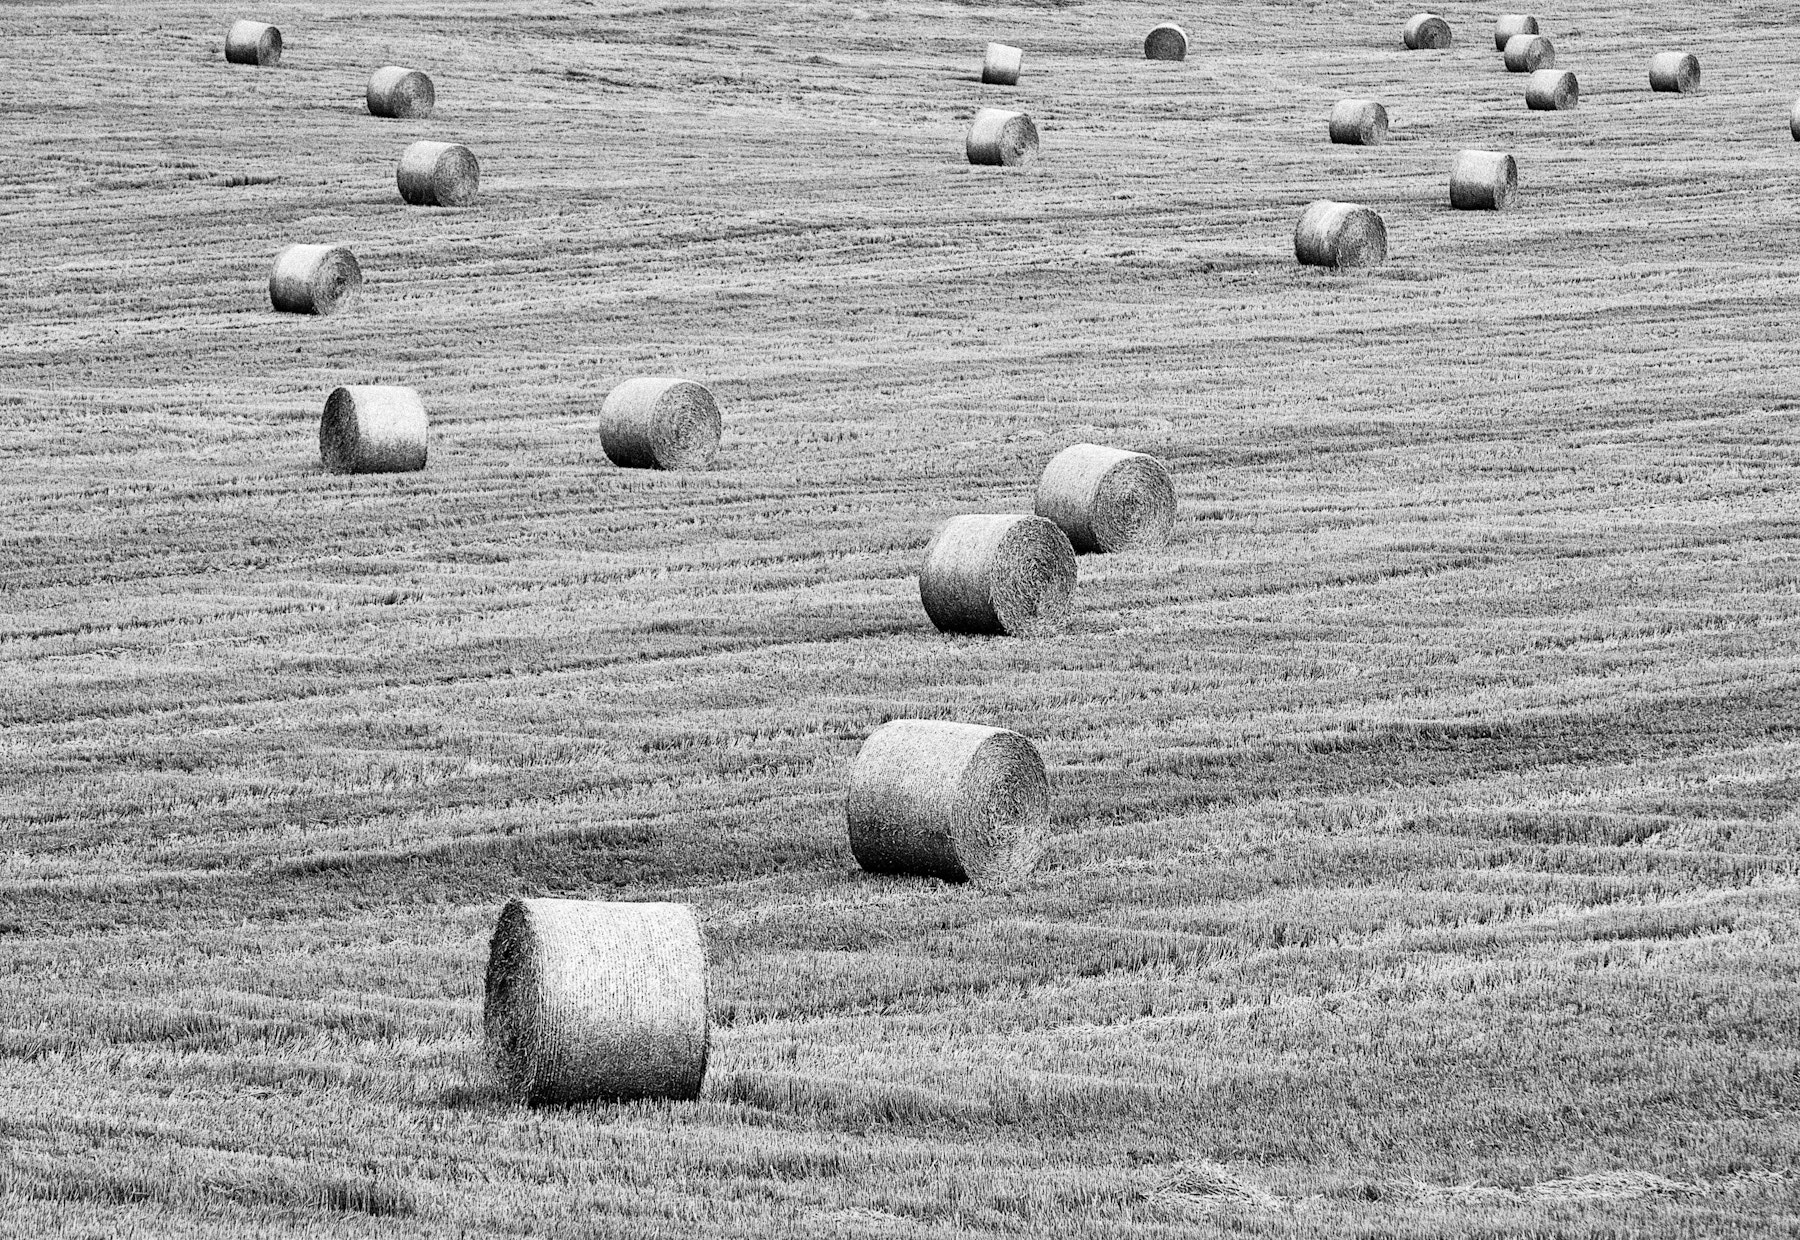 Photograph rolls of hay by Paul Werner Suess on 500px